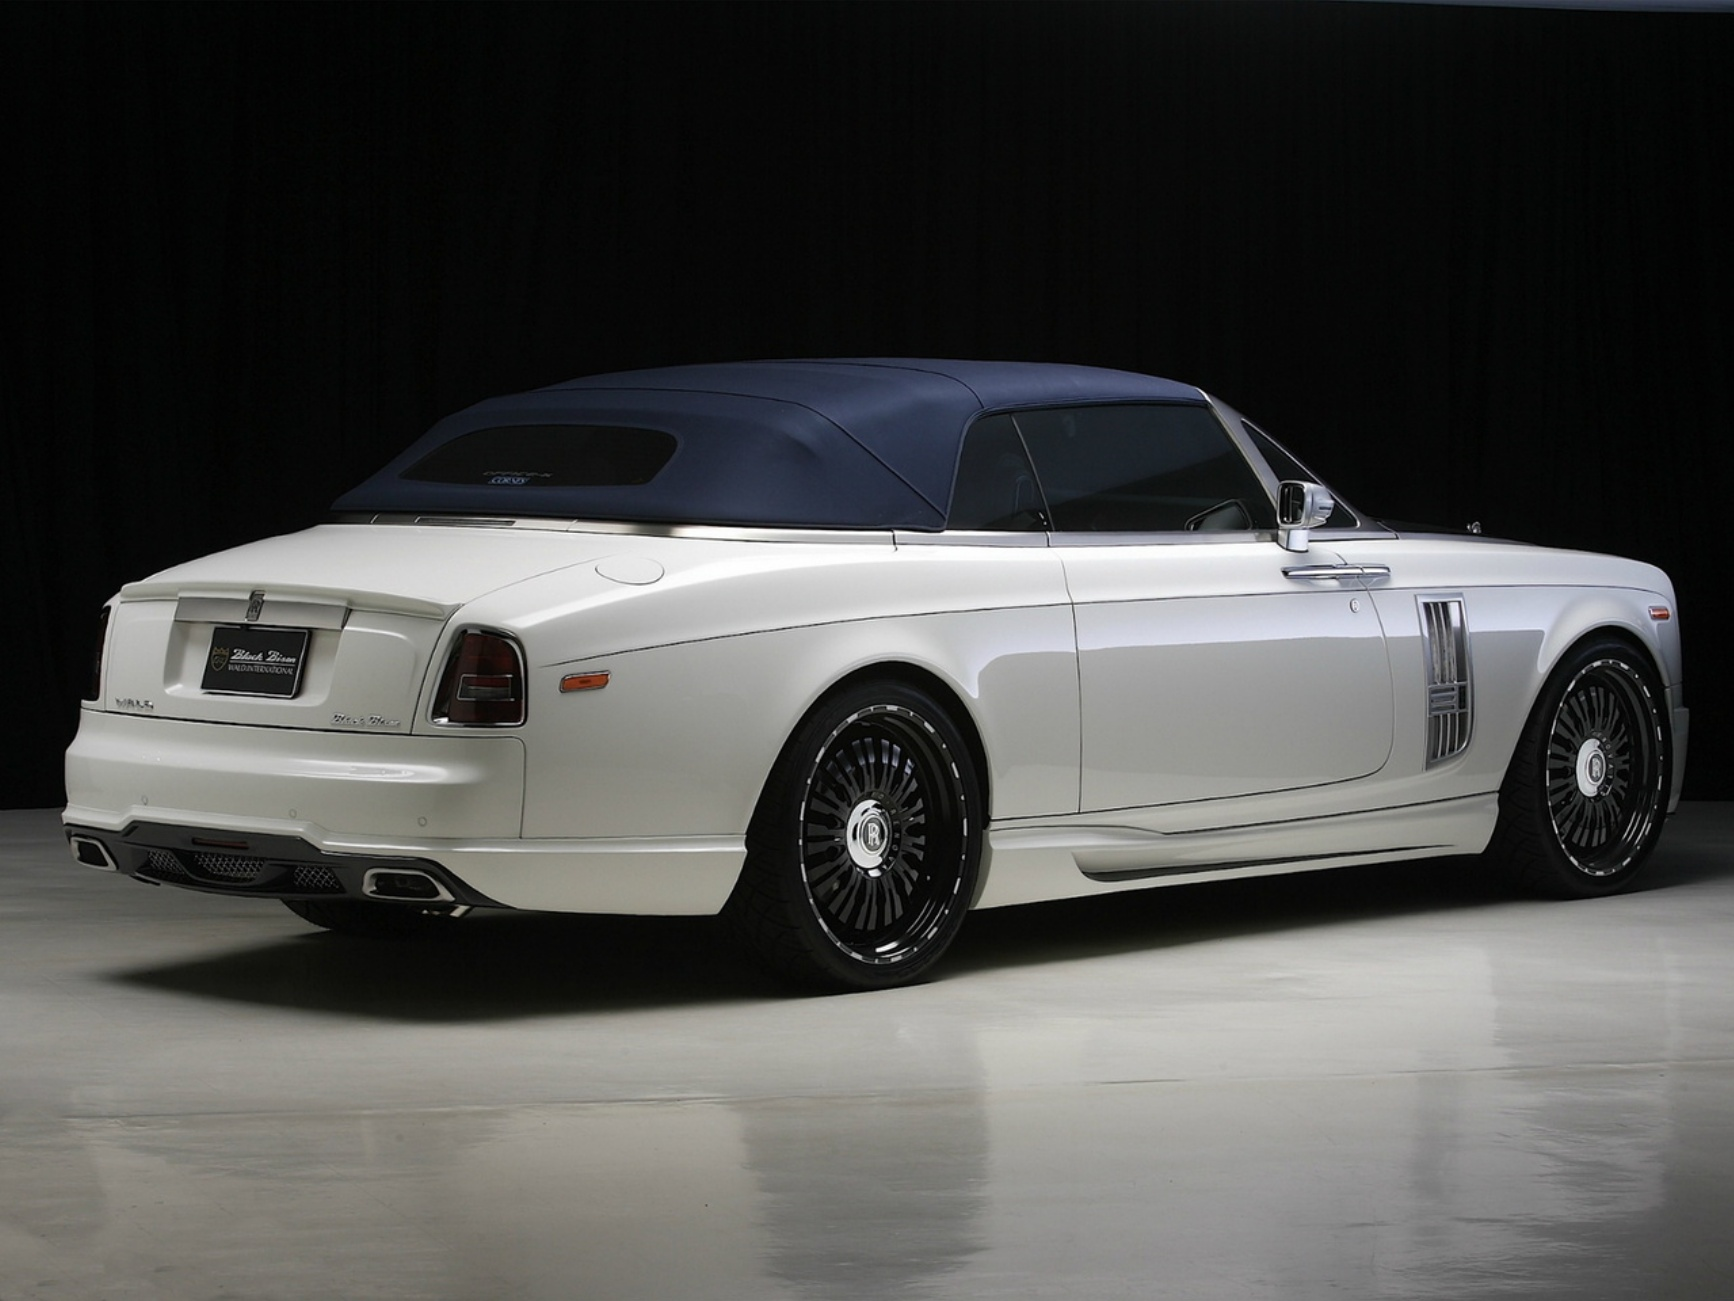 2012 Rolls Royce Phantom Drophead Coupe luxury tuning     f